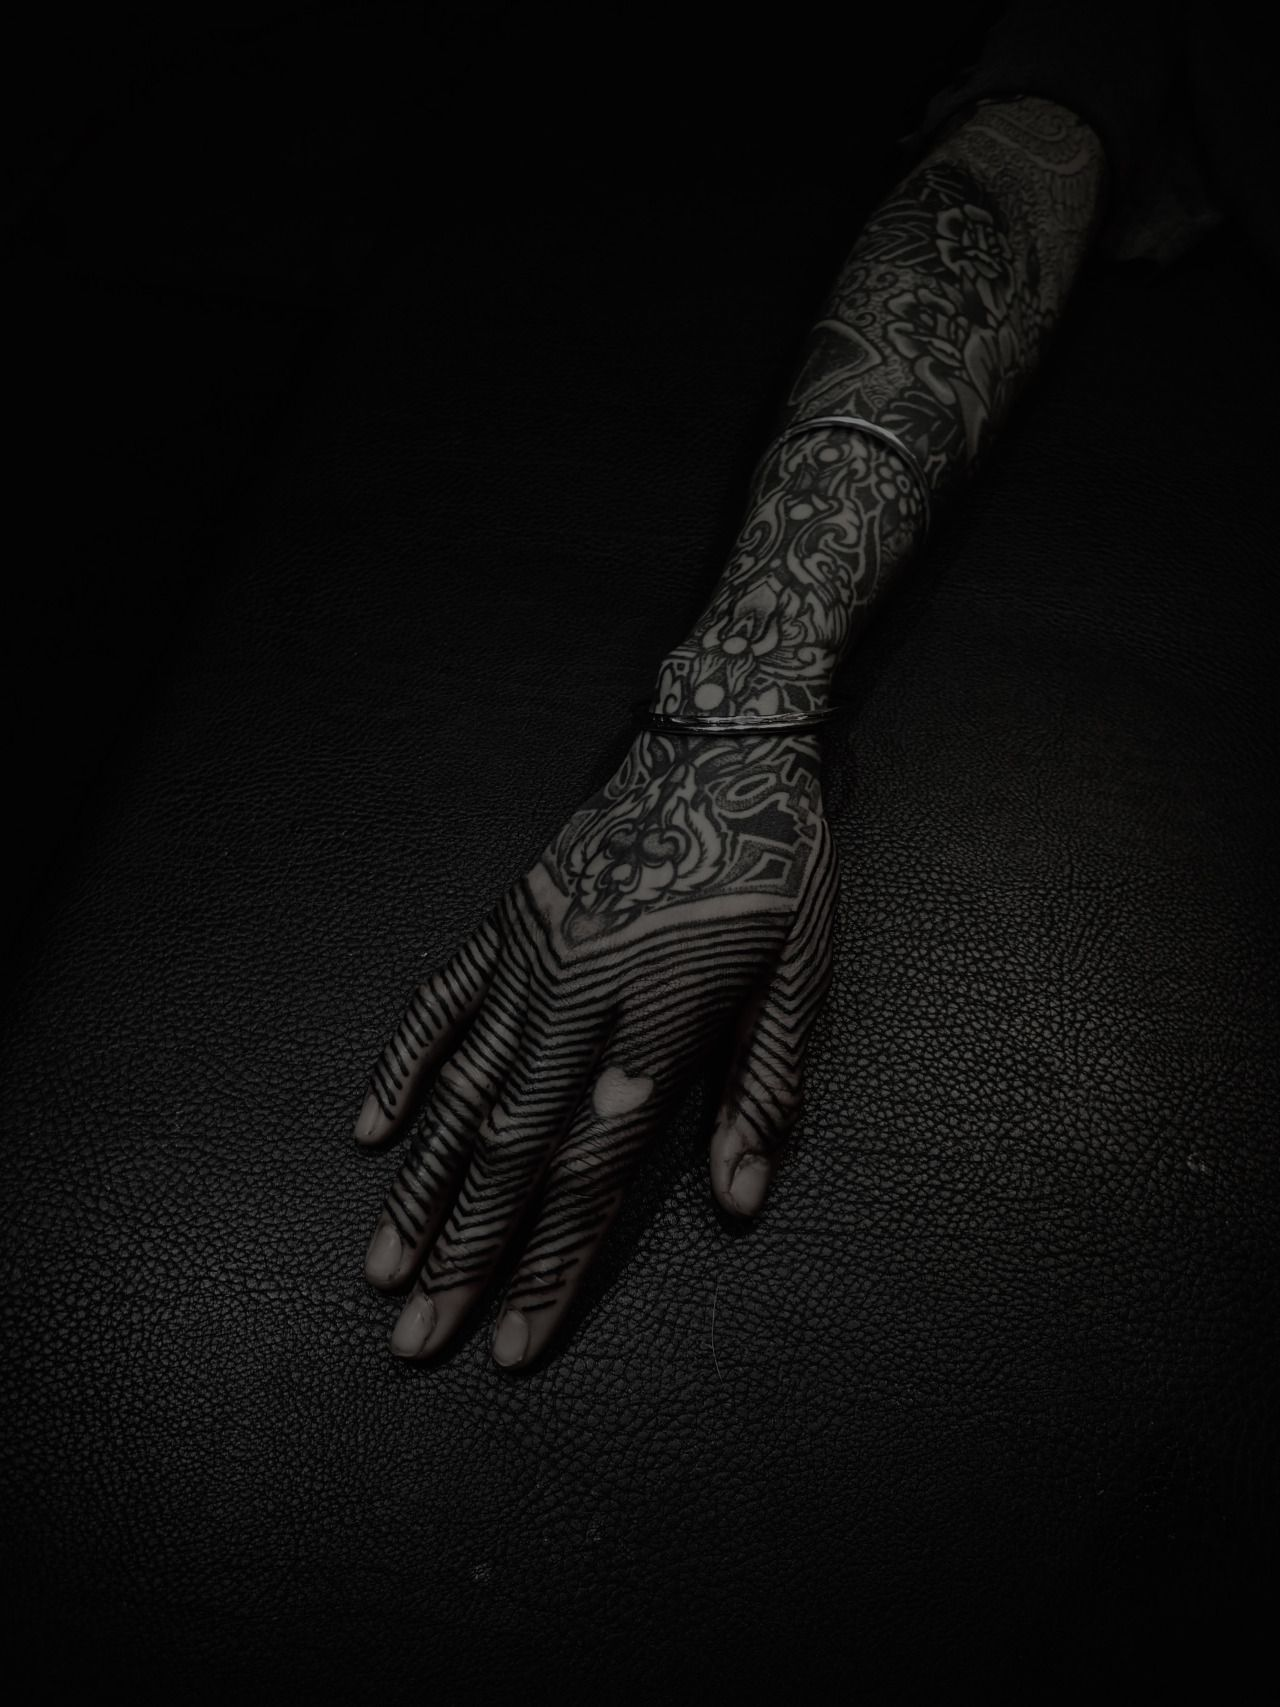 GUY LE TATTOOER Hand tattoos, Body modification